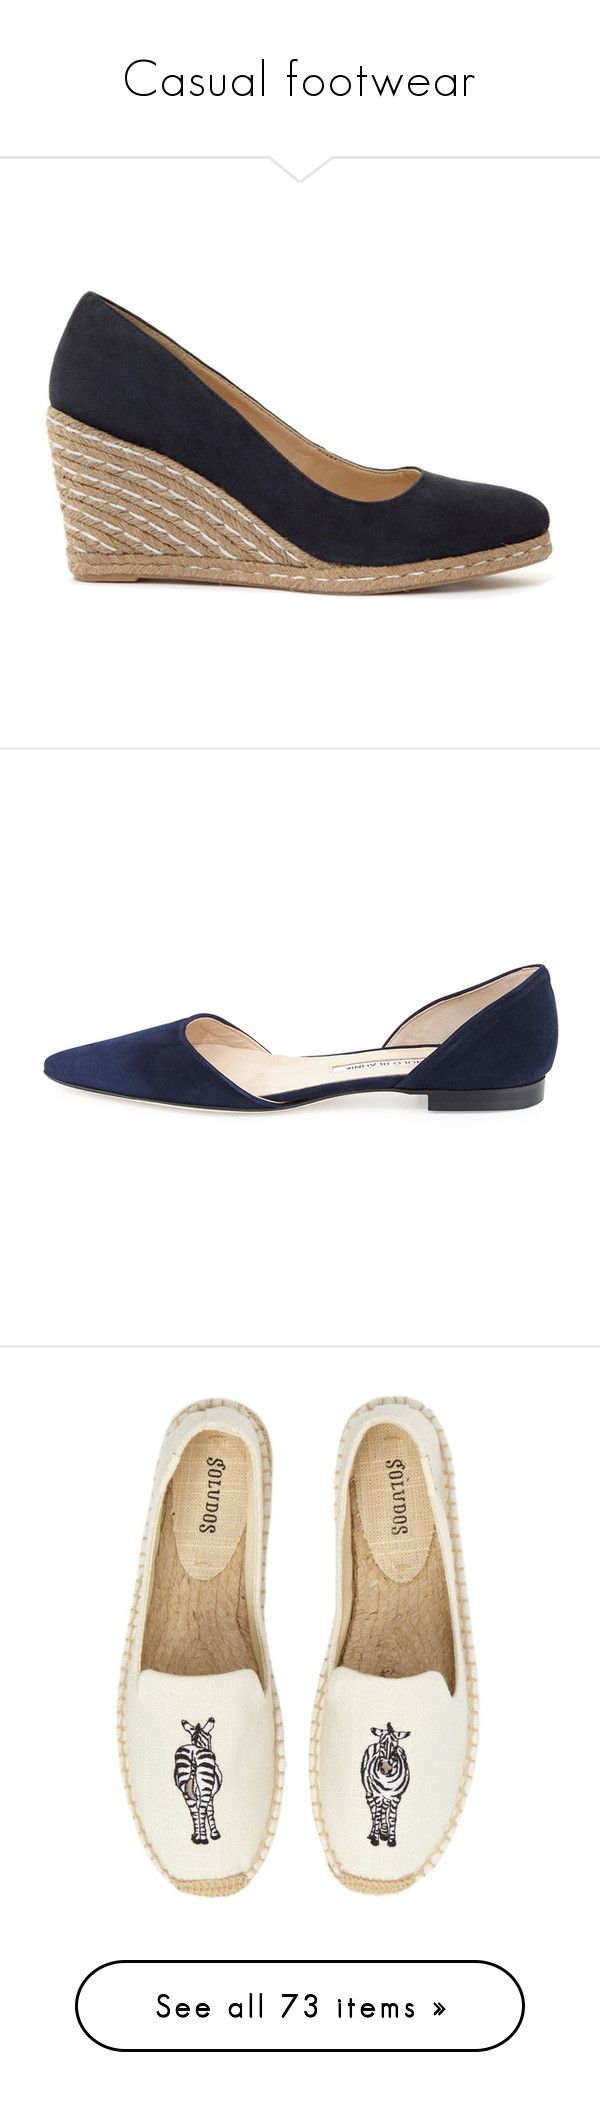 """""""Casual footwear"""" by dresslikearoyal ❤ liked on Polyvore featuring shoes, pumps, navy, pointed toe pumps, wedge heel pumps, wedge pumps, navy pumps, navy flat shoes, flats and navy pointed toe flats"""